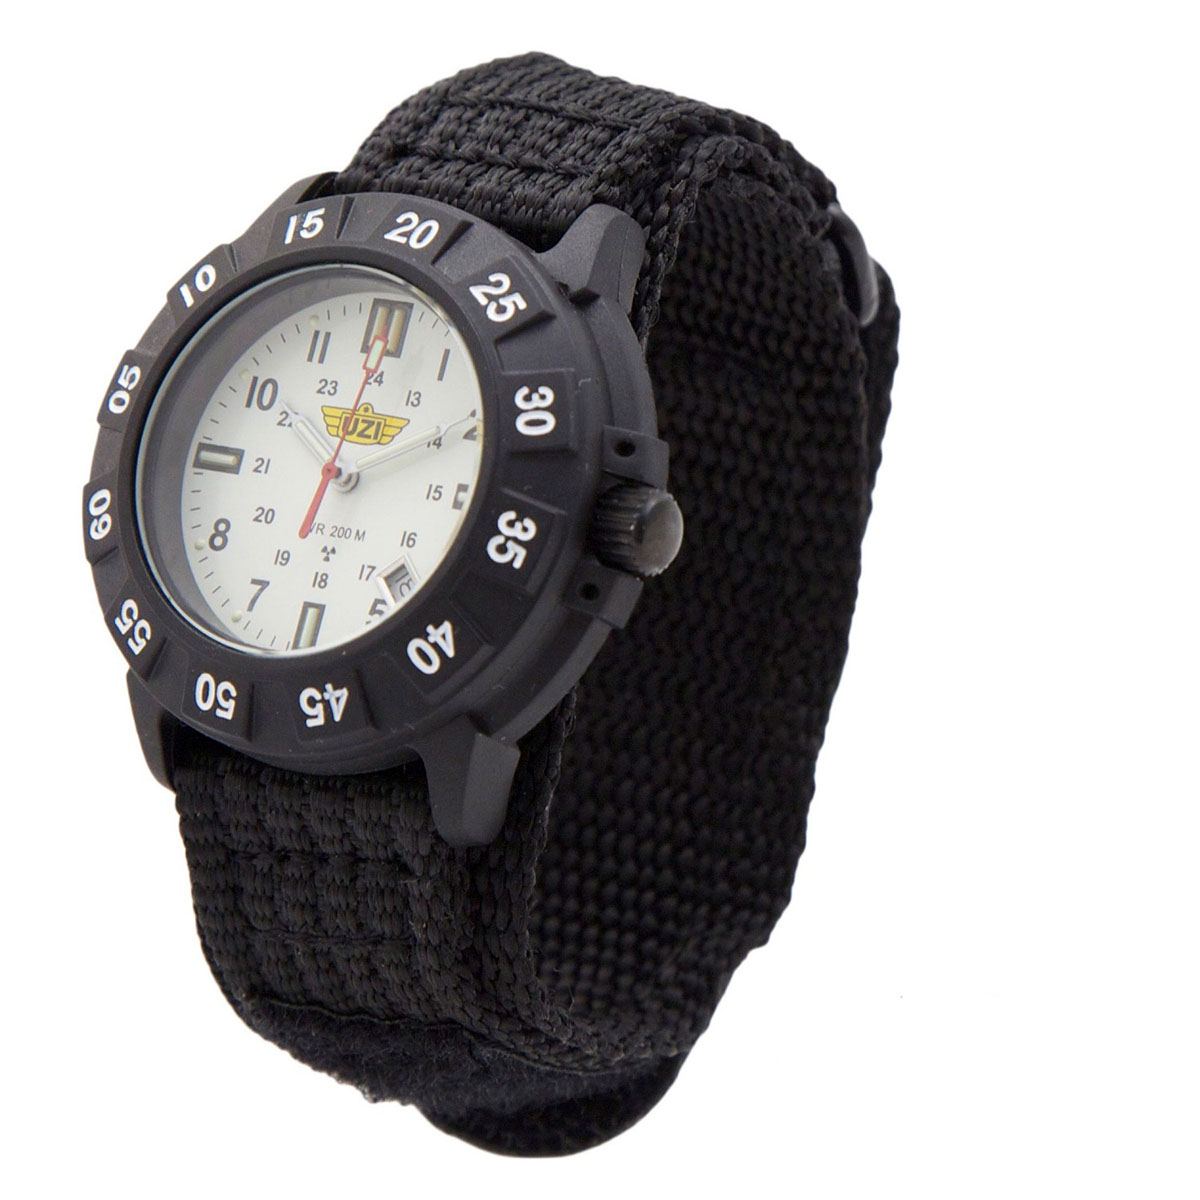 UZI  Protector Tritium Watch with White Face Nylon Strap - UZI-002-N